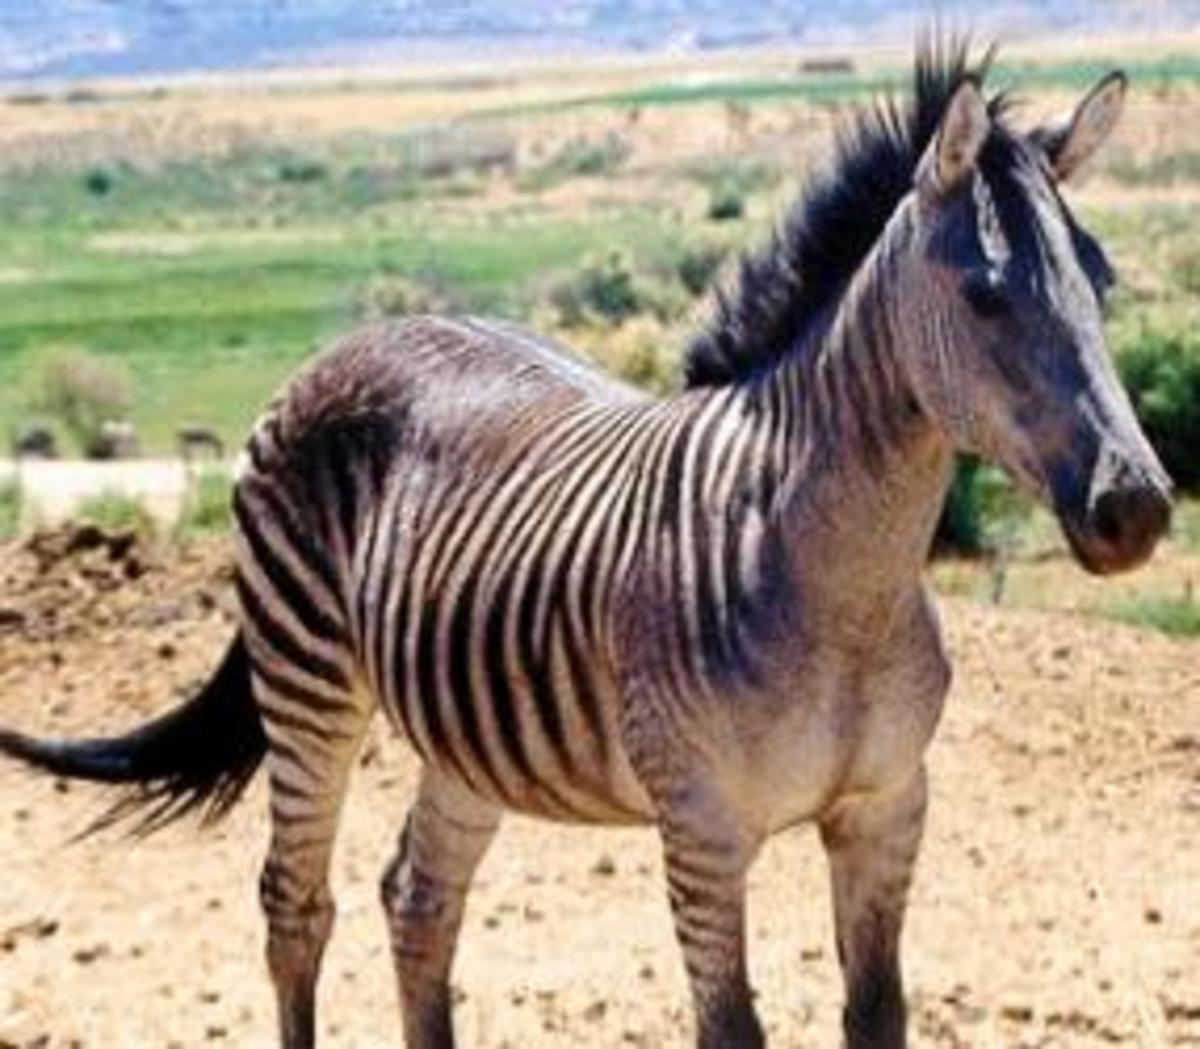 Zebroid A zorse is the result of crossbreeding a horse and a zebra. A zonkey is the result of crossbreeding a donkey with a zebThe Zony is the result of crossbreeding a pony to a zebra. All these three are called zebroids - defined as a cross between